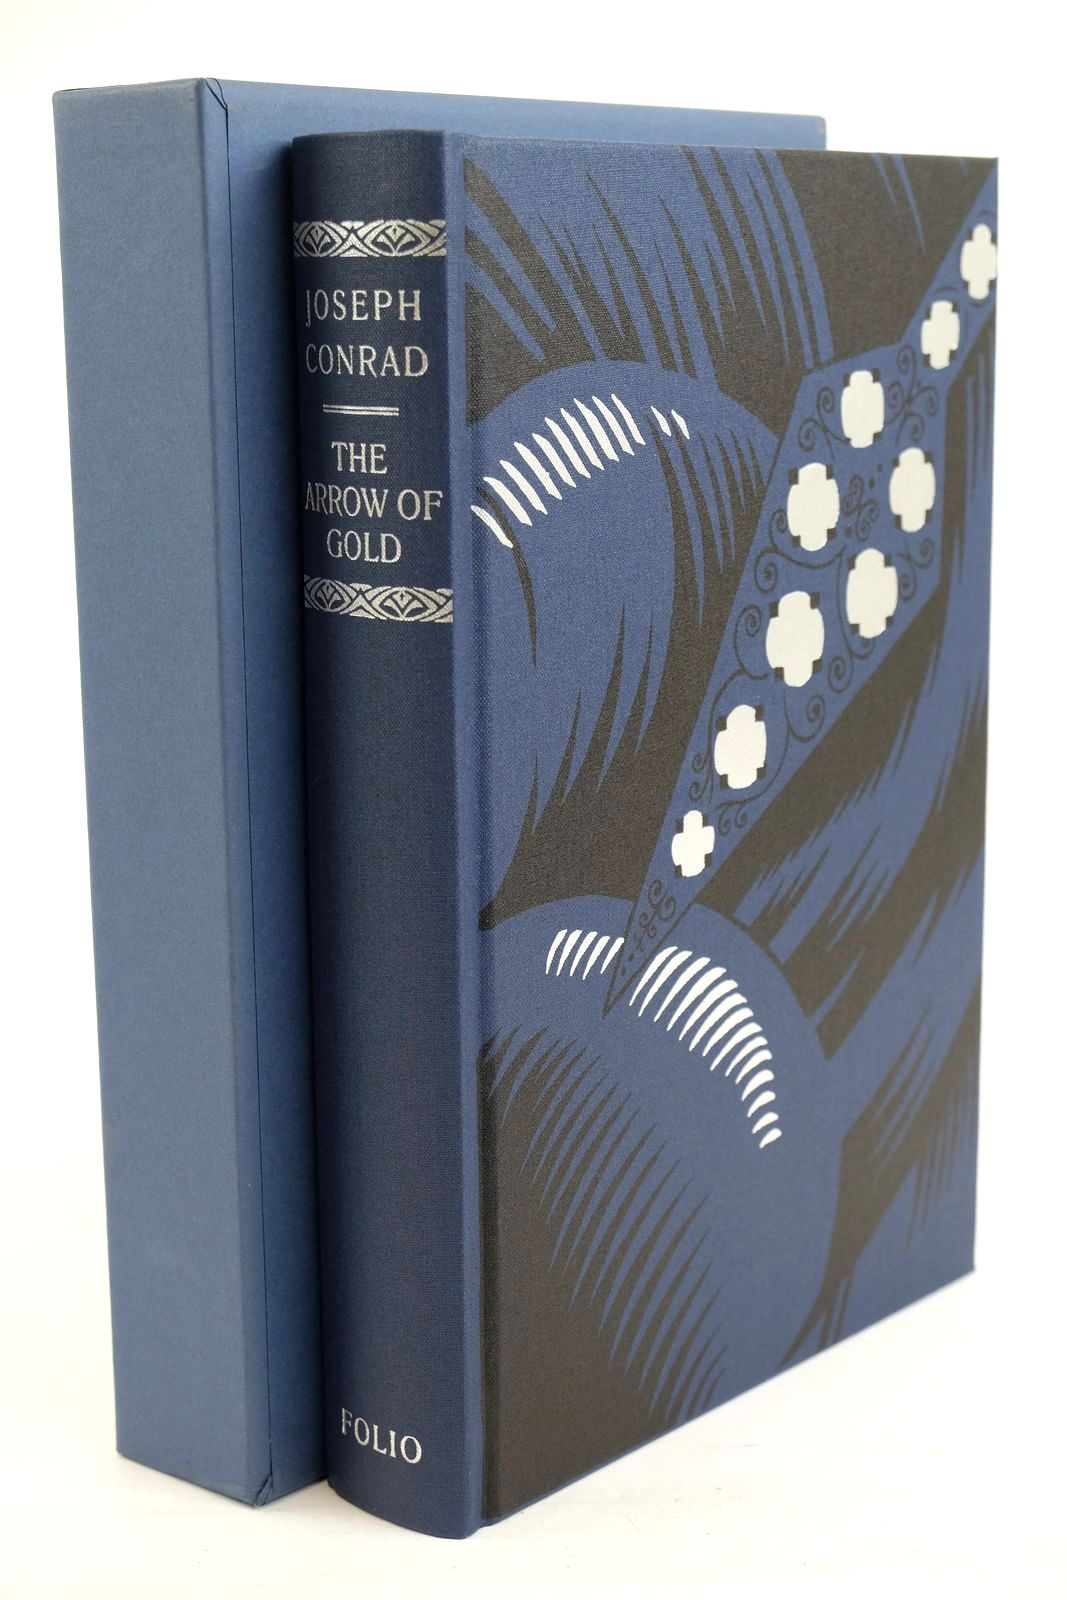 Photo of THE ARROW OF GOLD written by Conrad, Joseph illustrated by Mosley, Francis published by Folio Society (STOCK CODE: 1320397)  for sale by Stella & Rose's Books